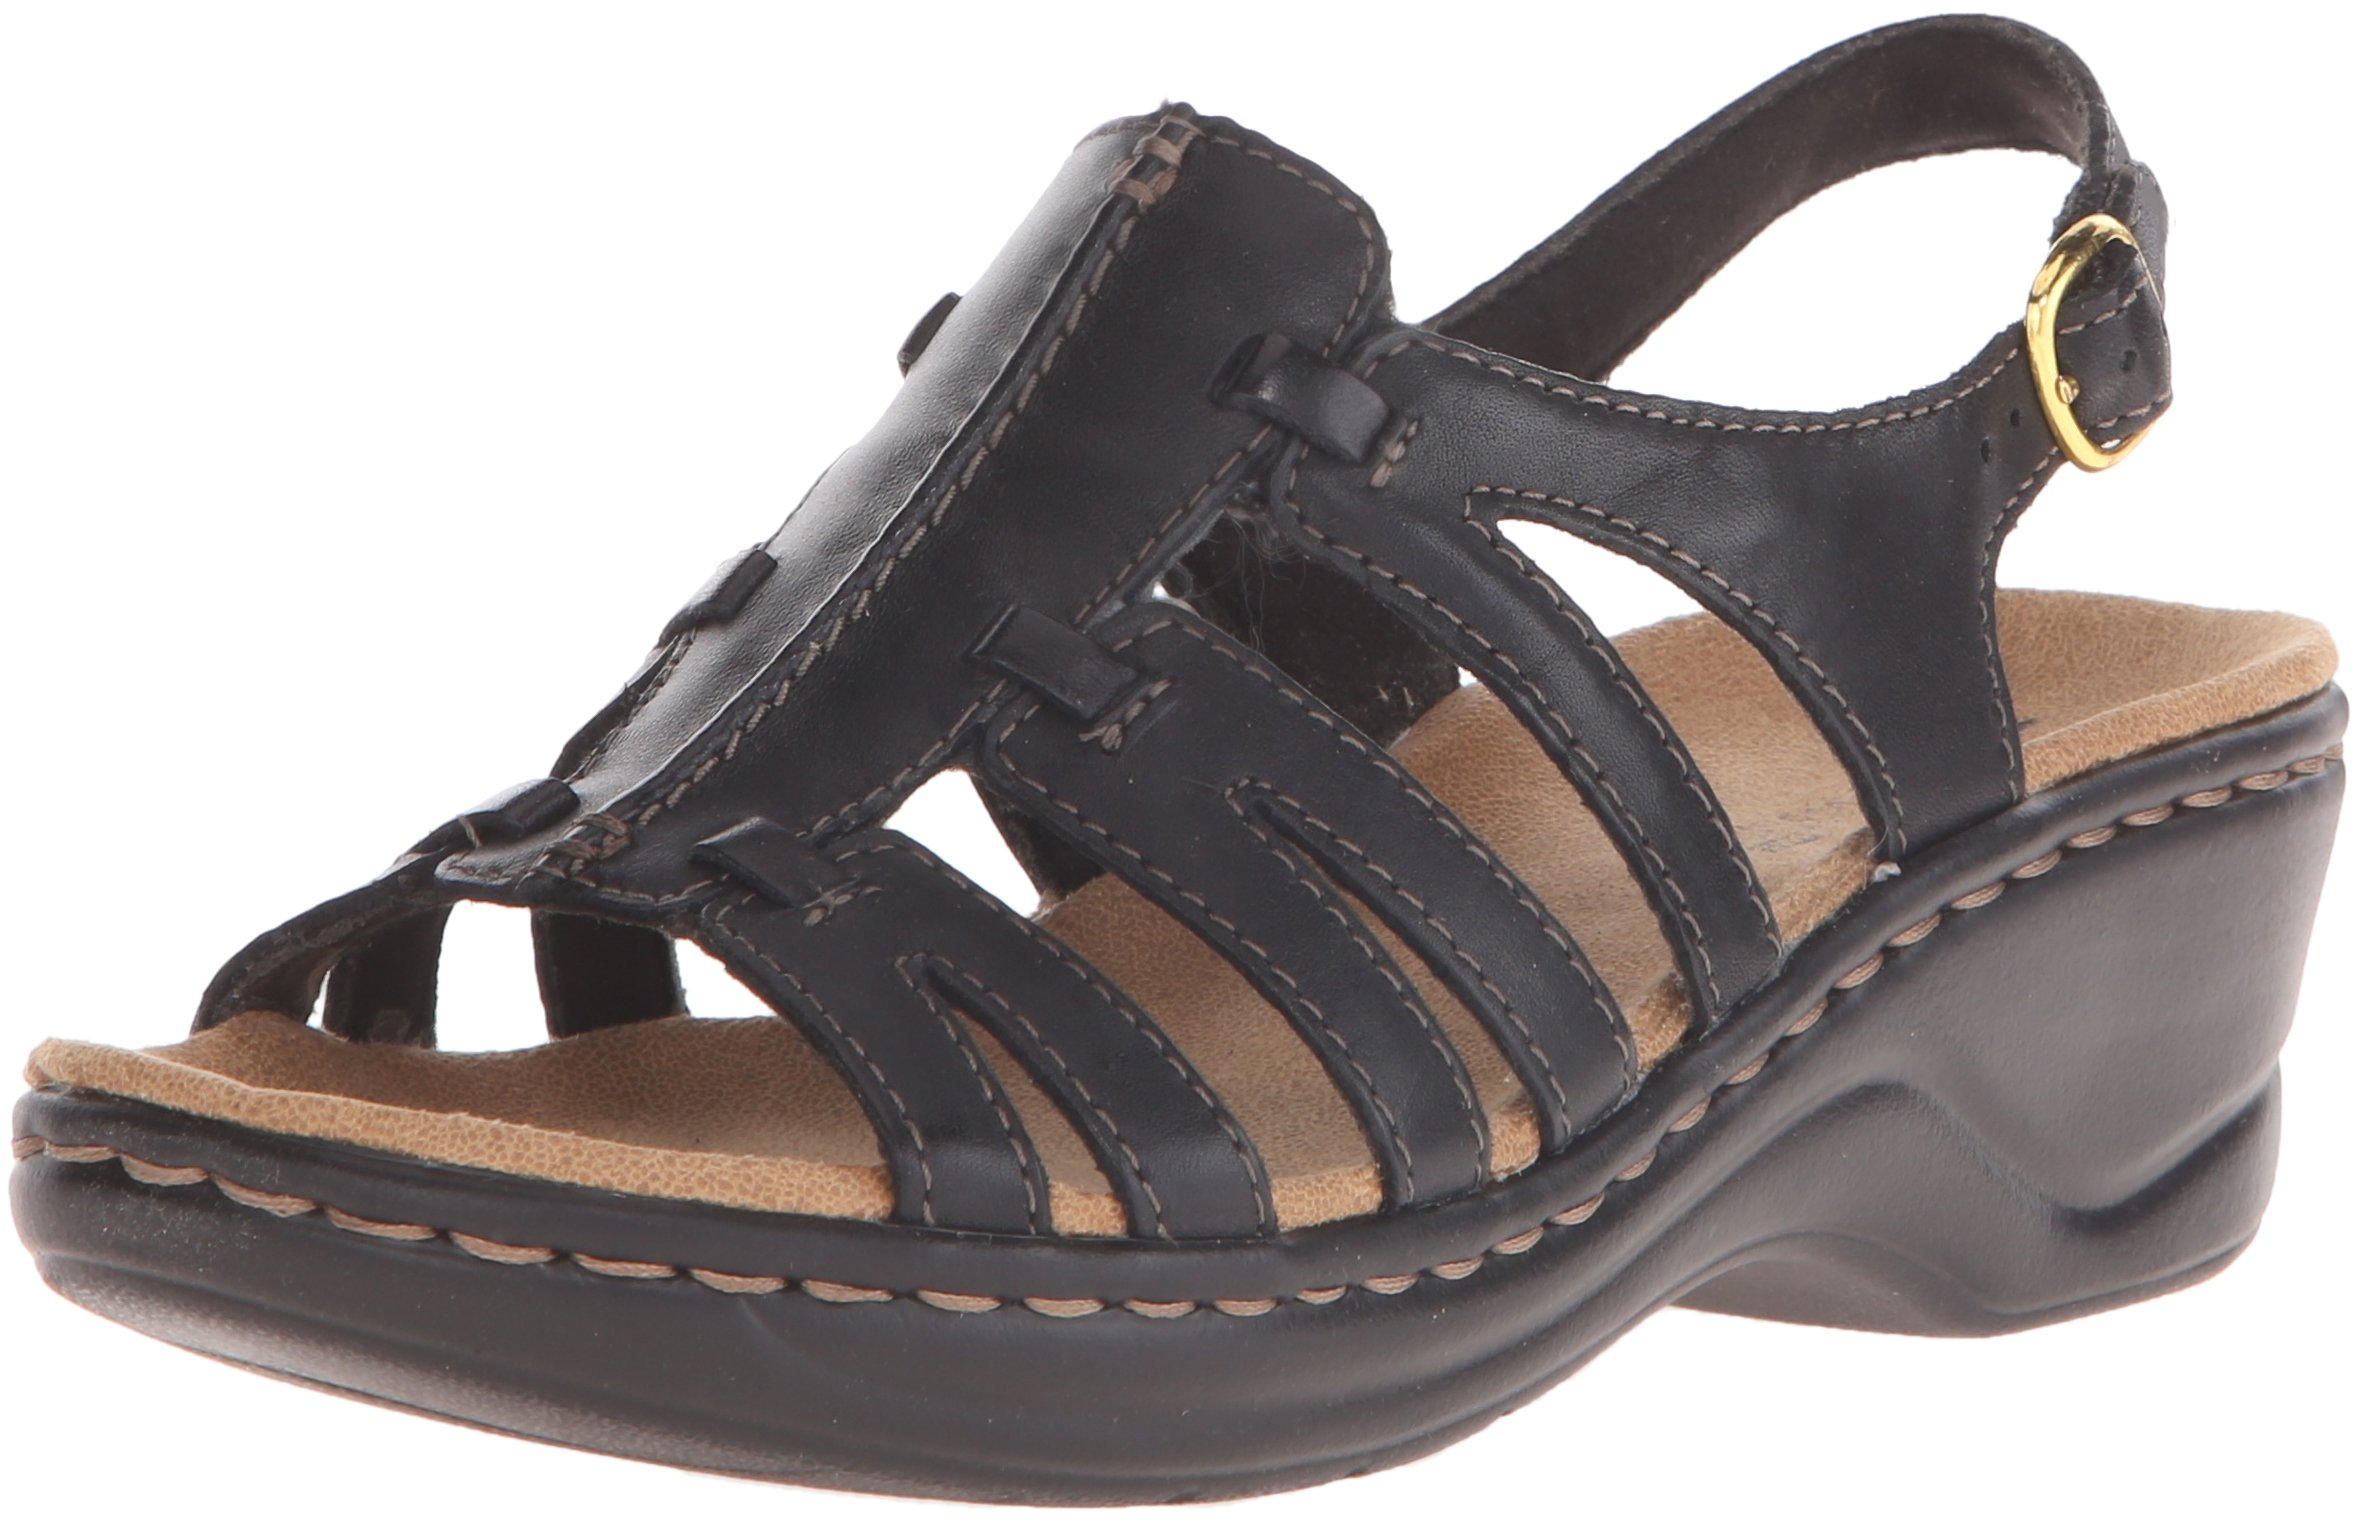 CLARKS Women's Lexi Marigold Q Black Leather 7 B - Medium